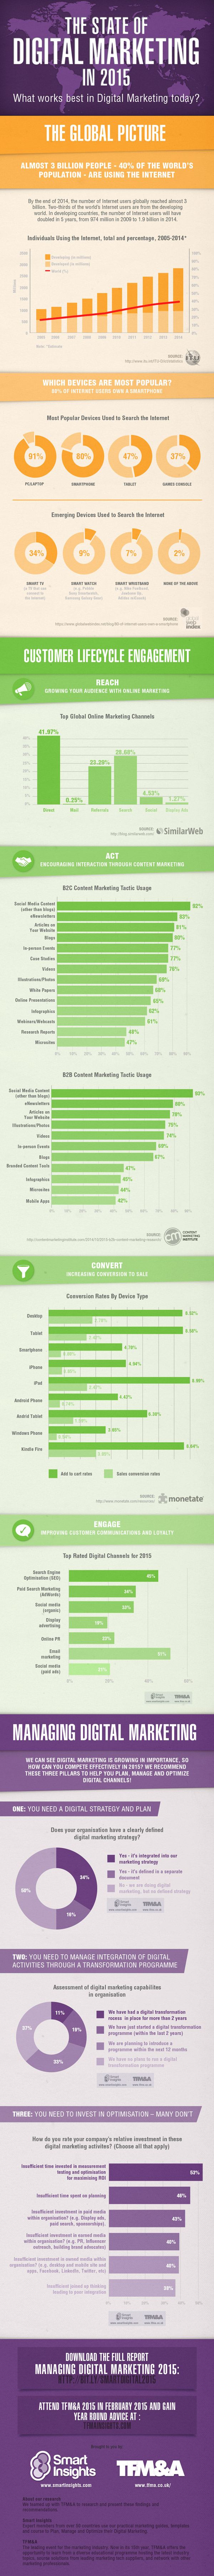 digital marketing insights infographic